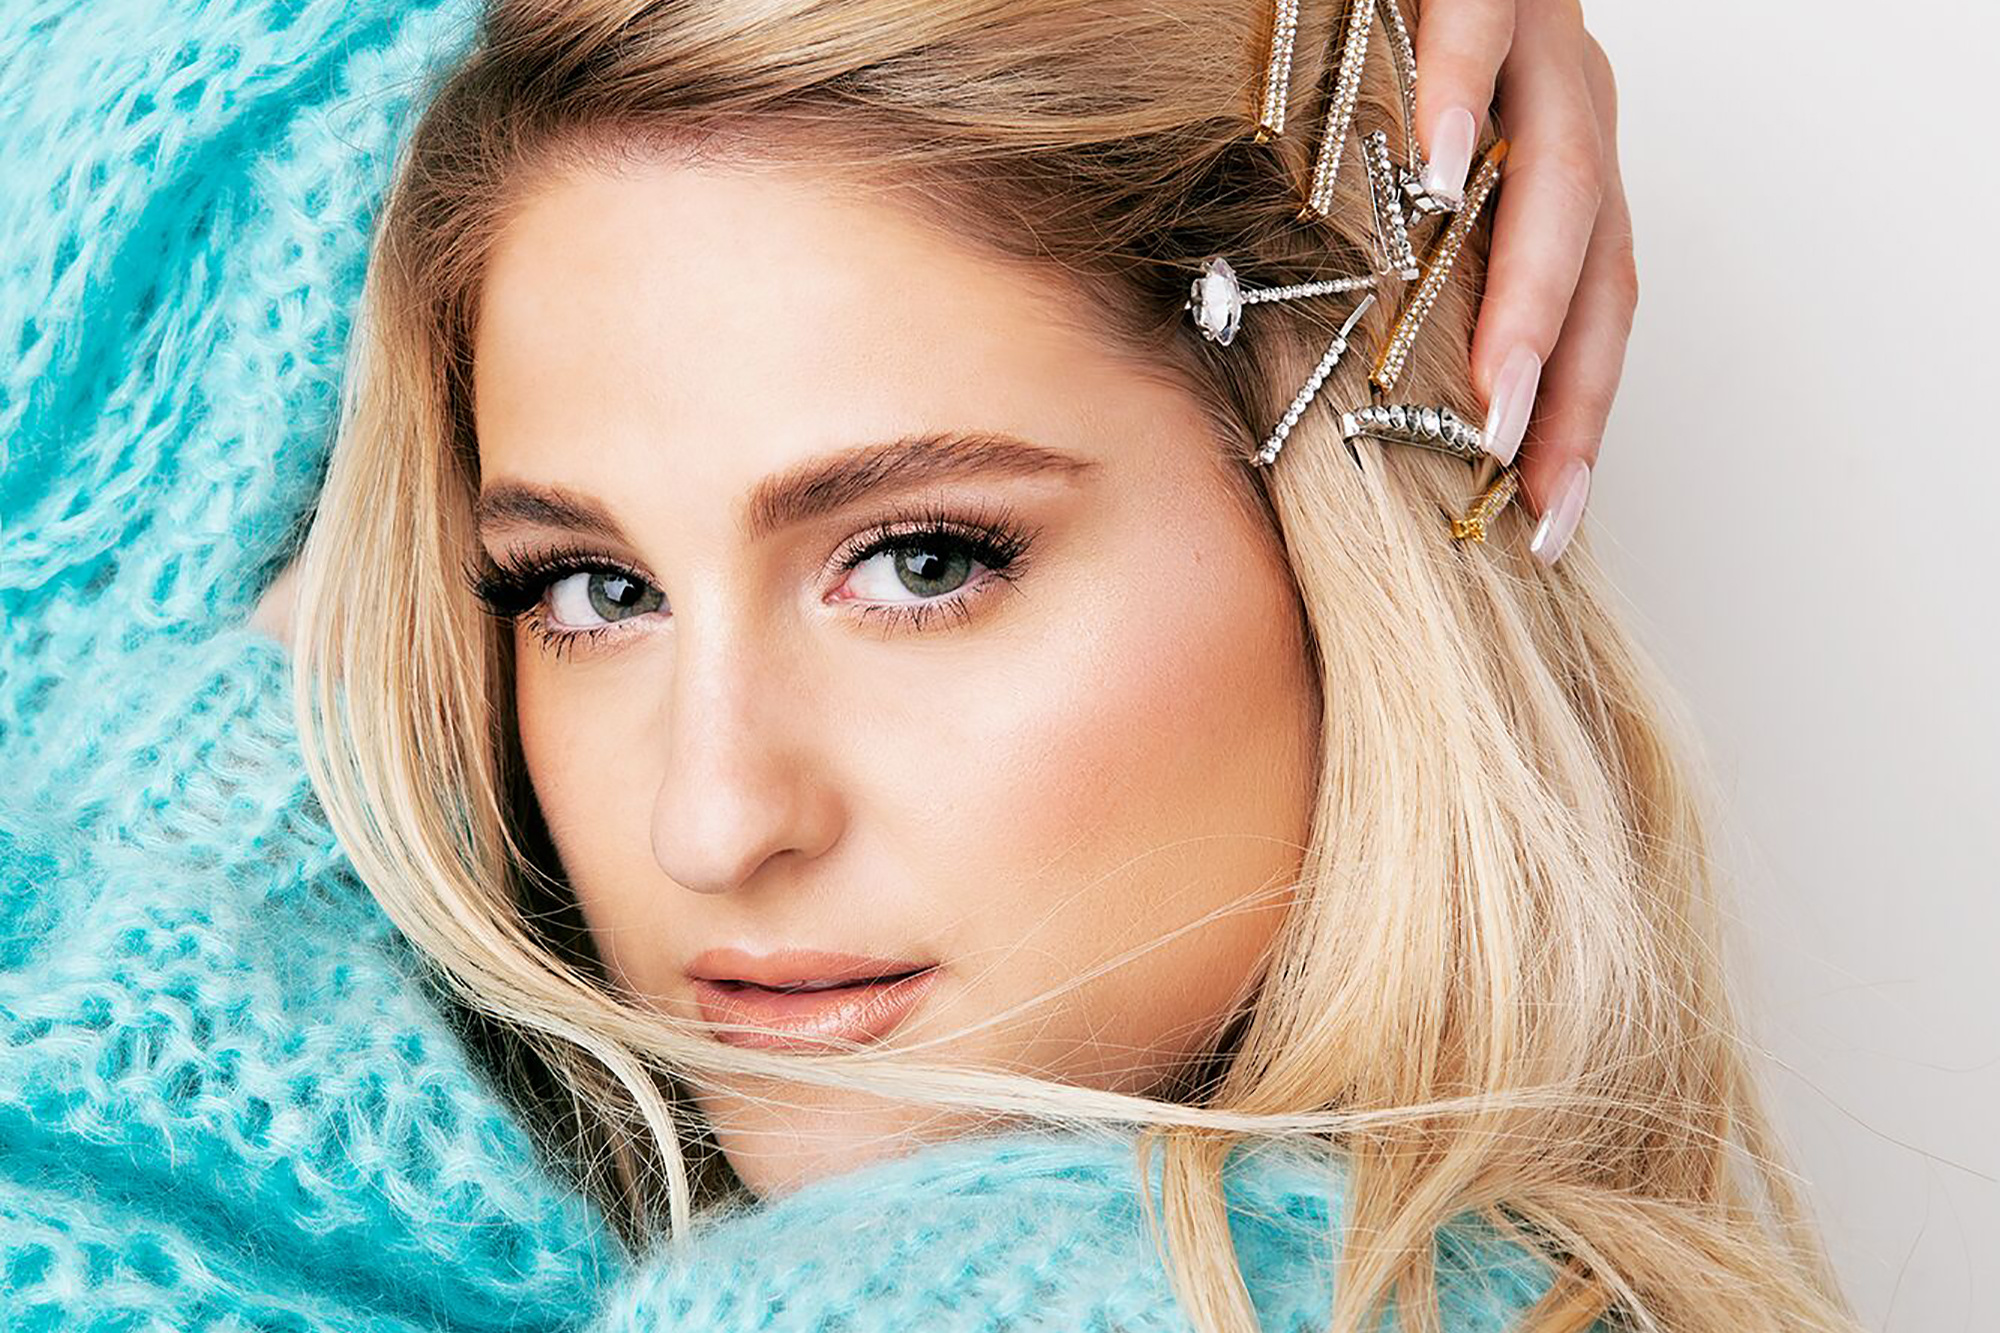 Meghan Trainor s  Treat Myself  Has Us Questioning How Deep Feminism Runs in the Music Industry